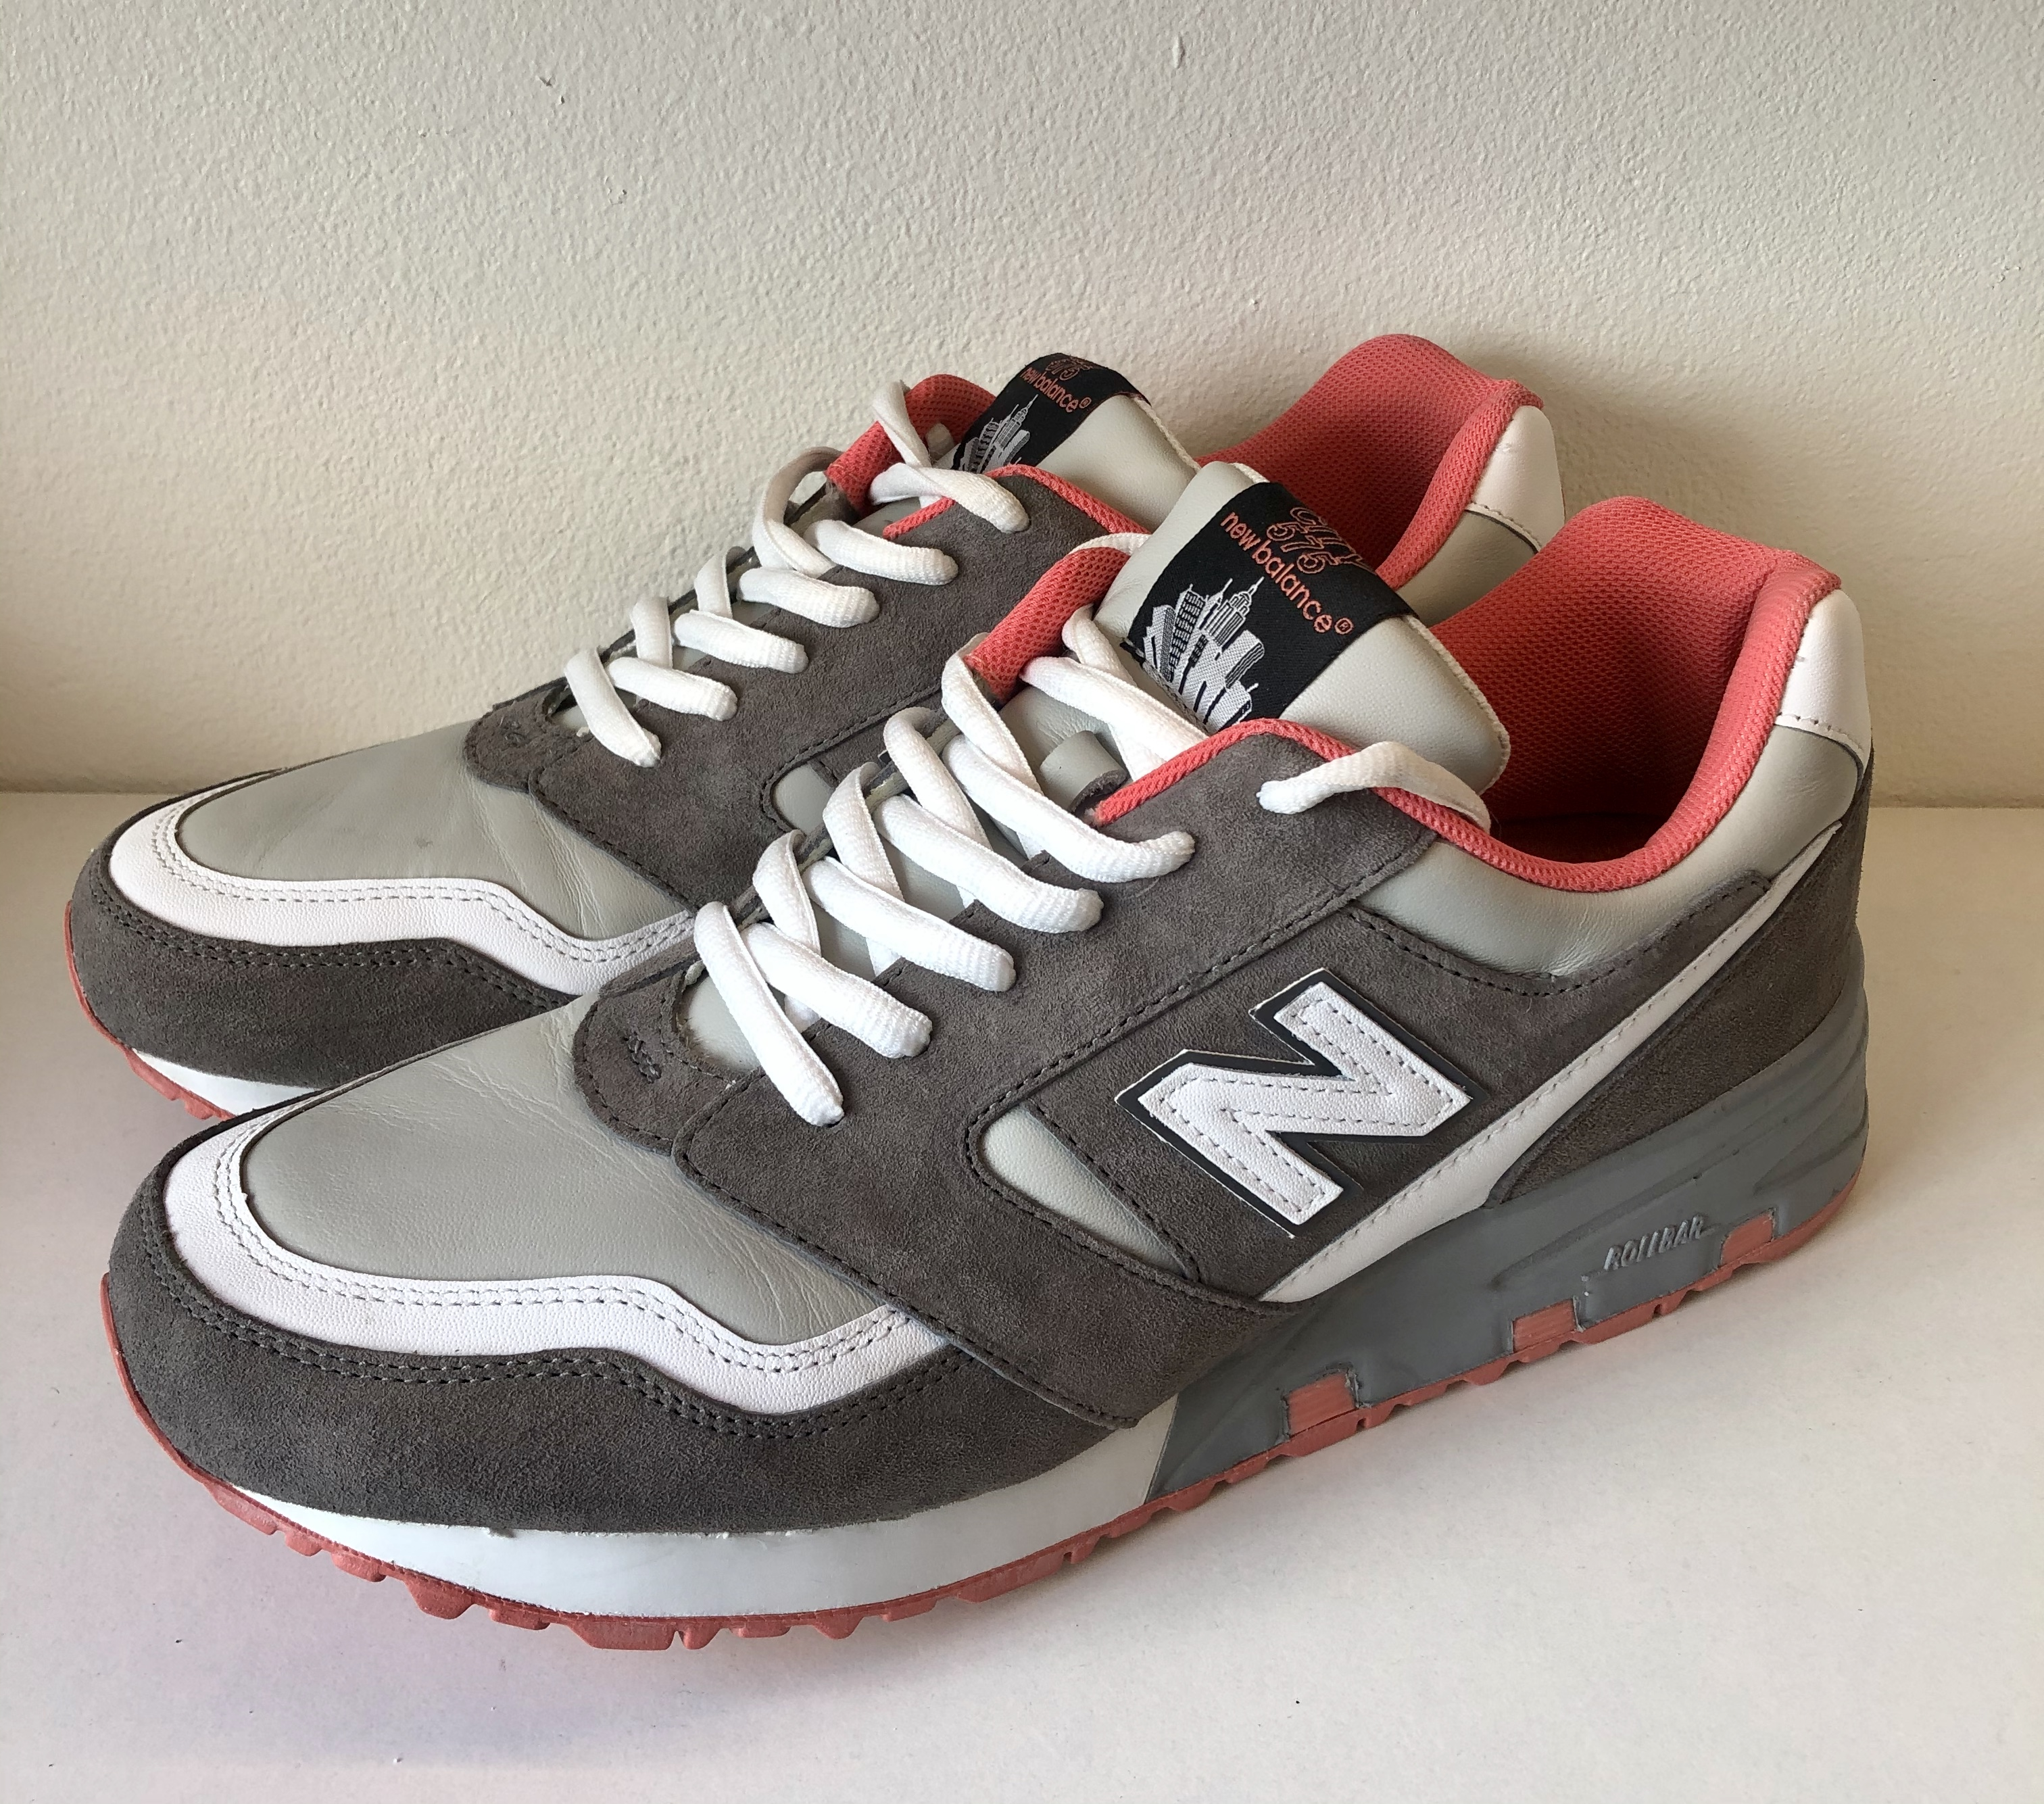 New Balance 575 Staple Pigeon Grey